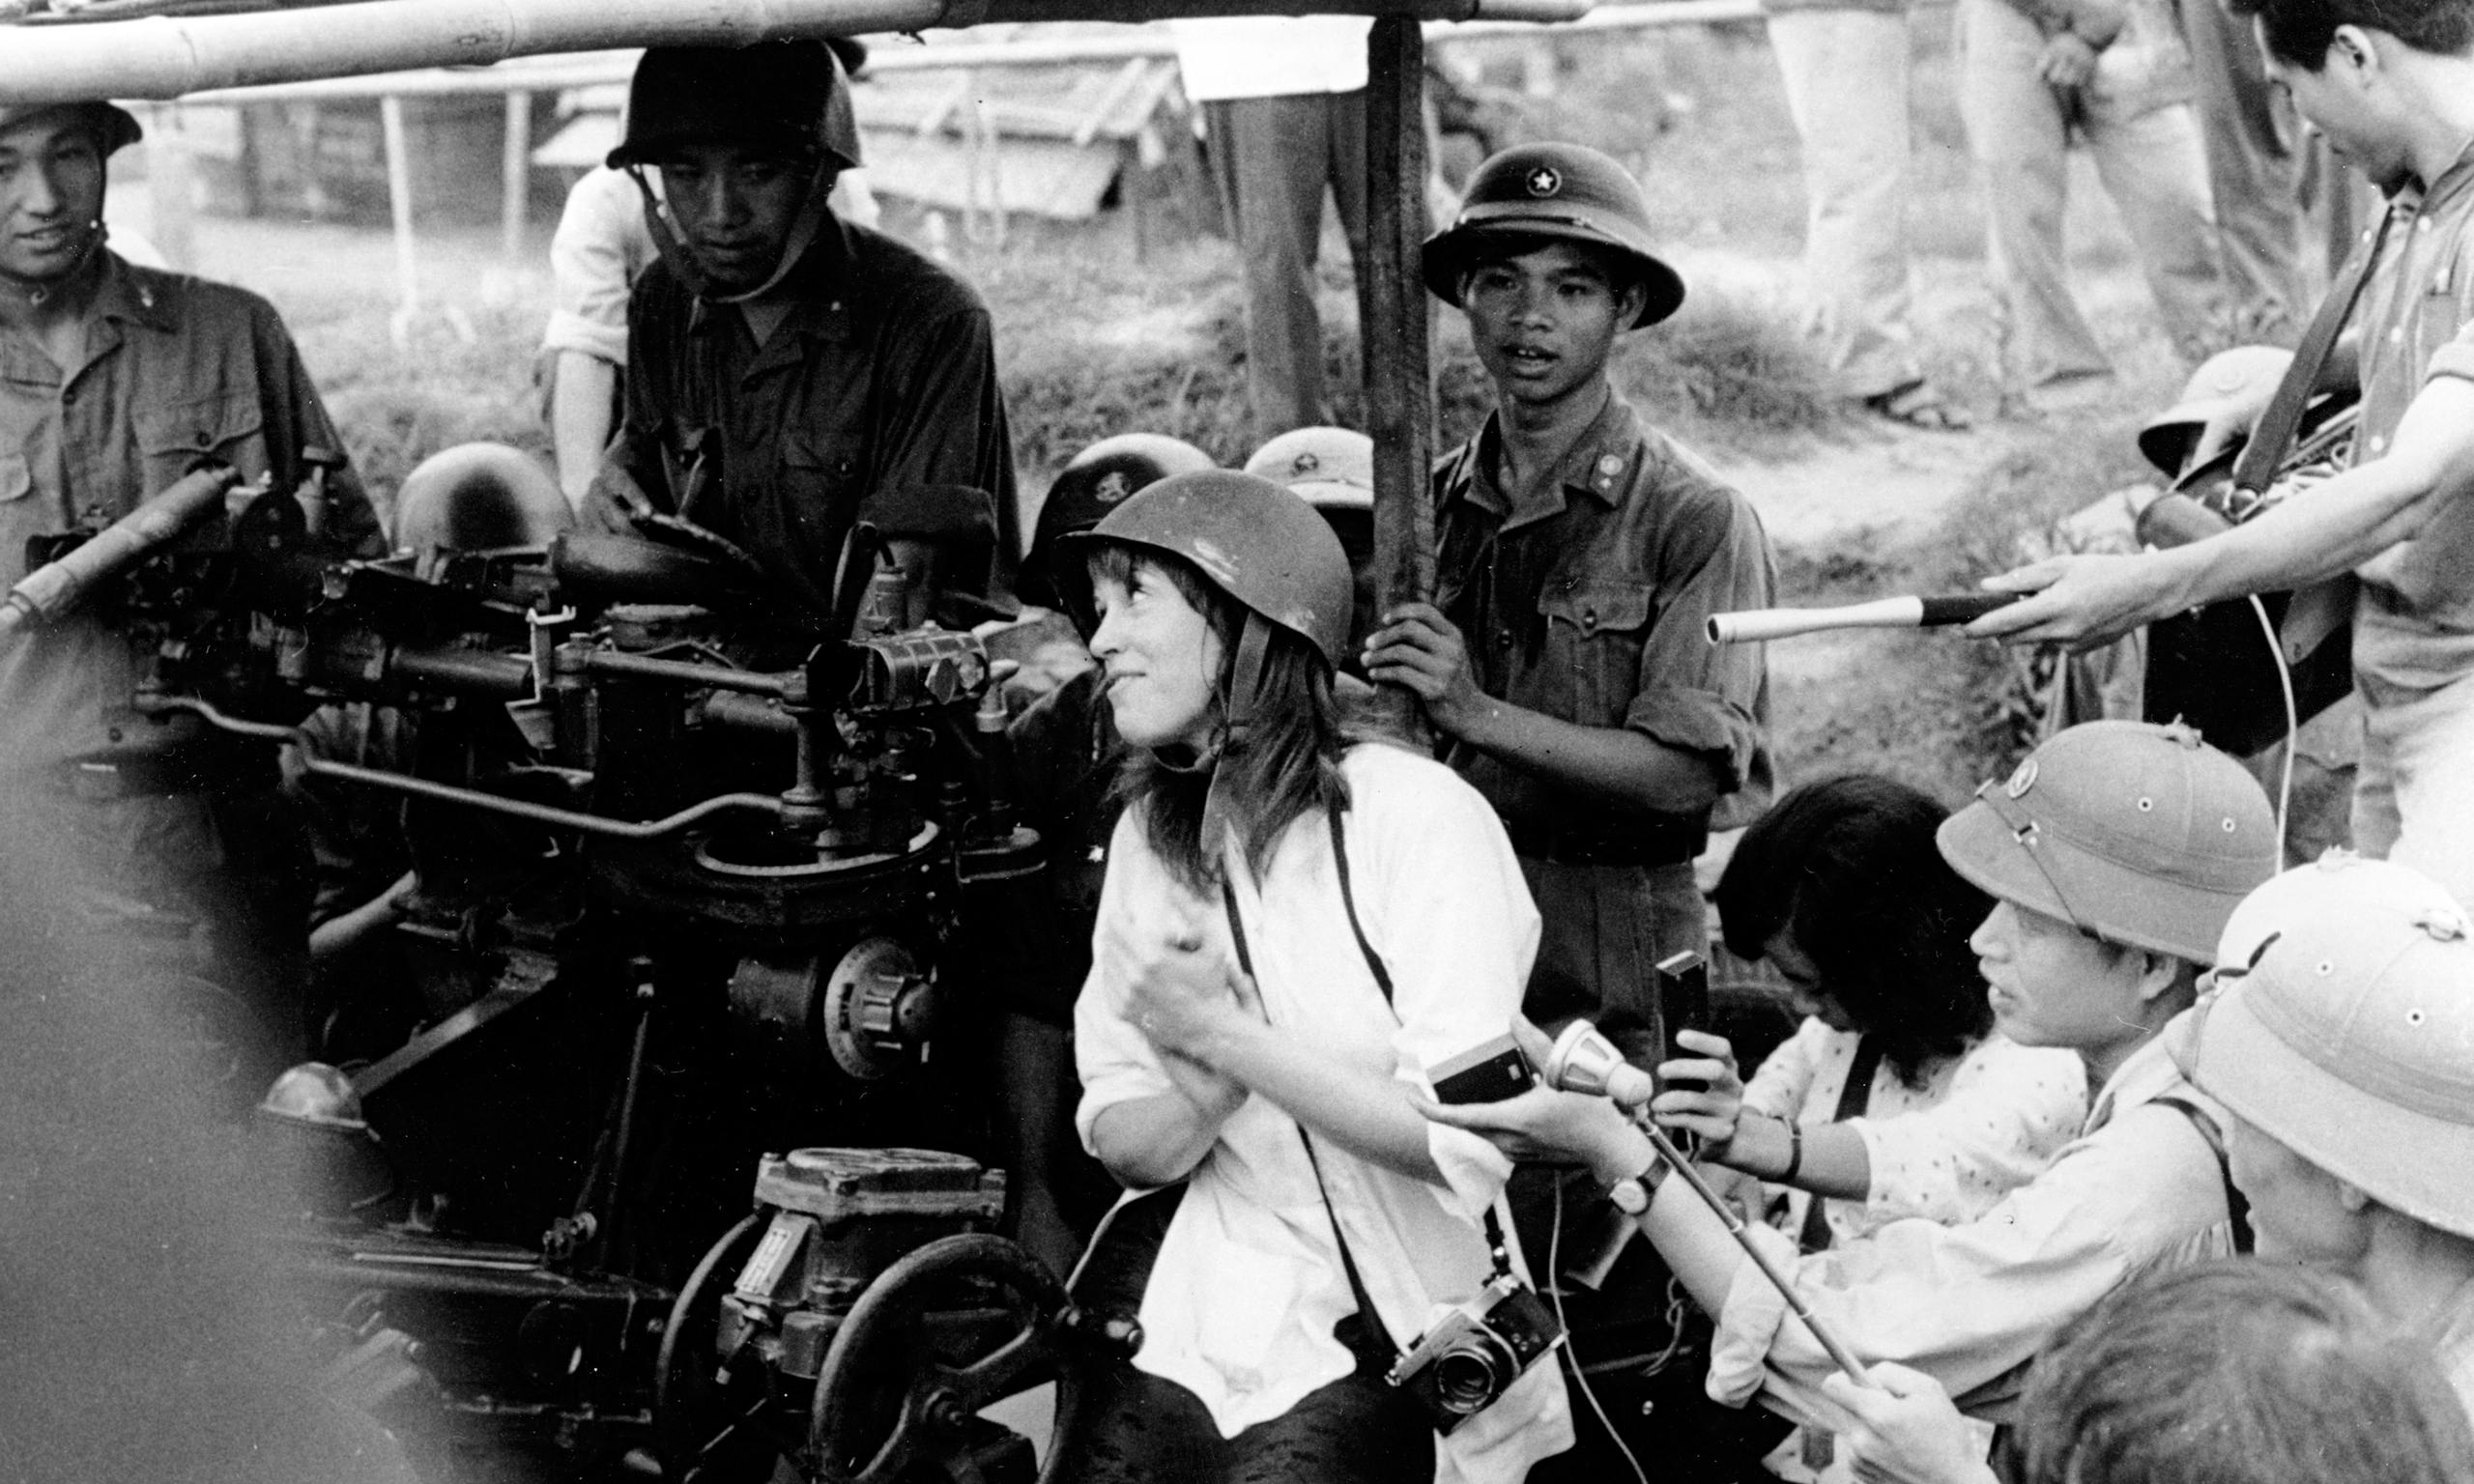 Jane Fonda in Hanoi, North Vietnam. | Source: Nihon Denpa News/AP